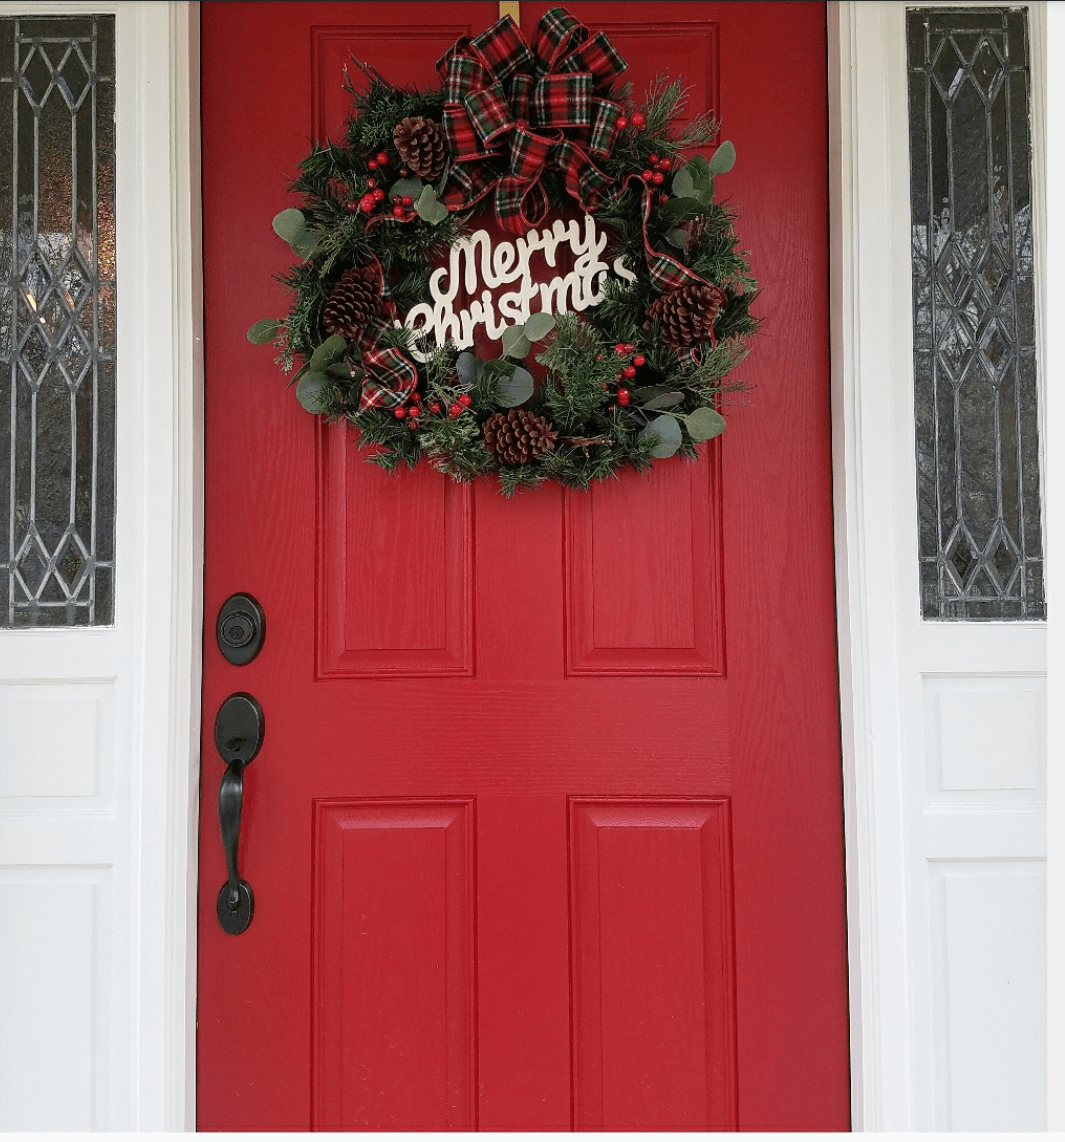 Seasons Greetings Unique Wreaths Swags And Door Decor To Welcome